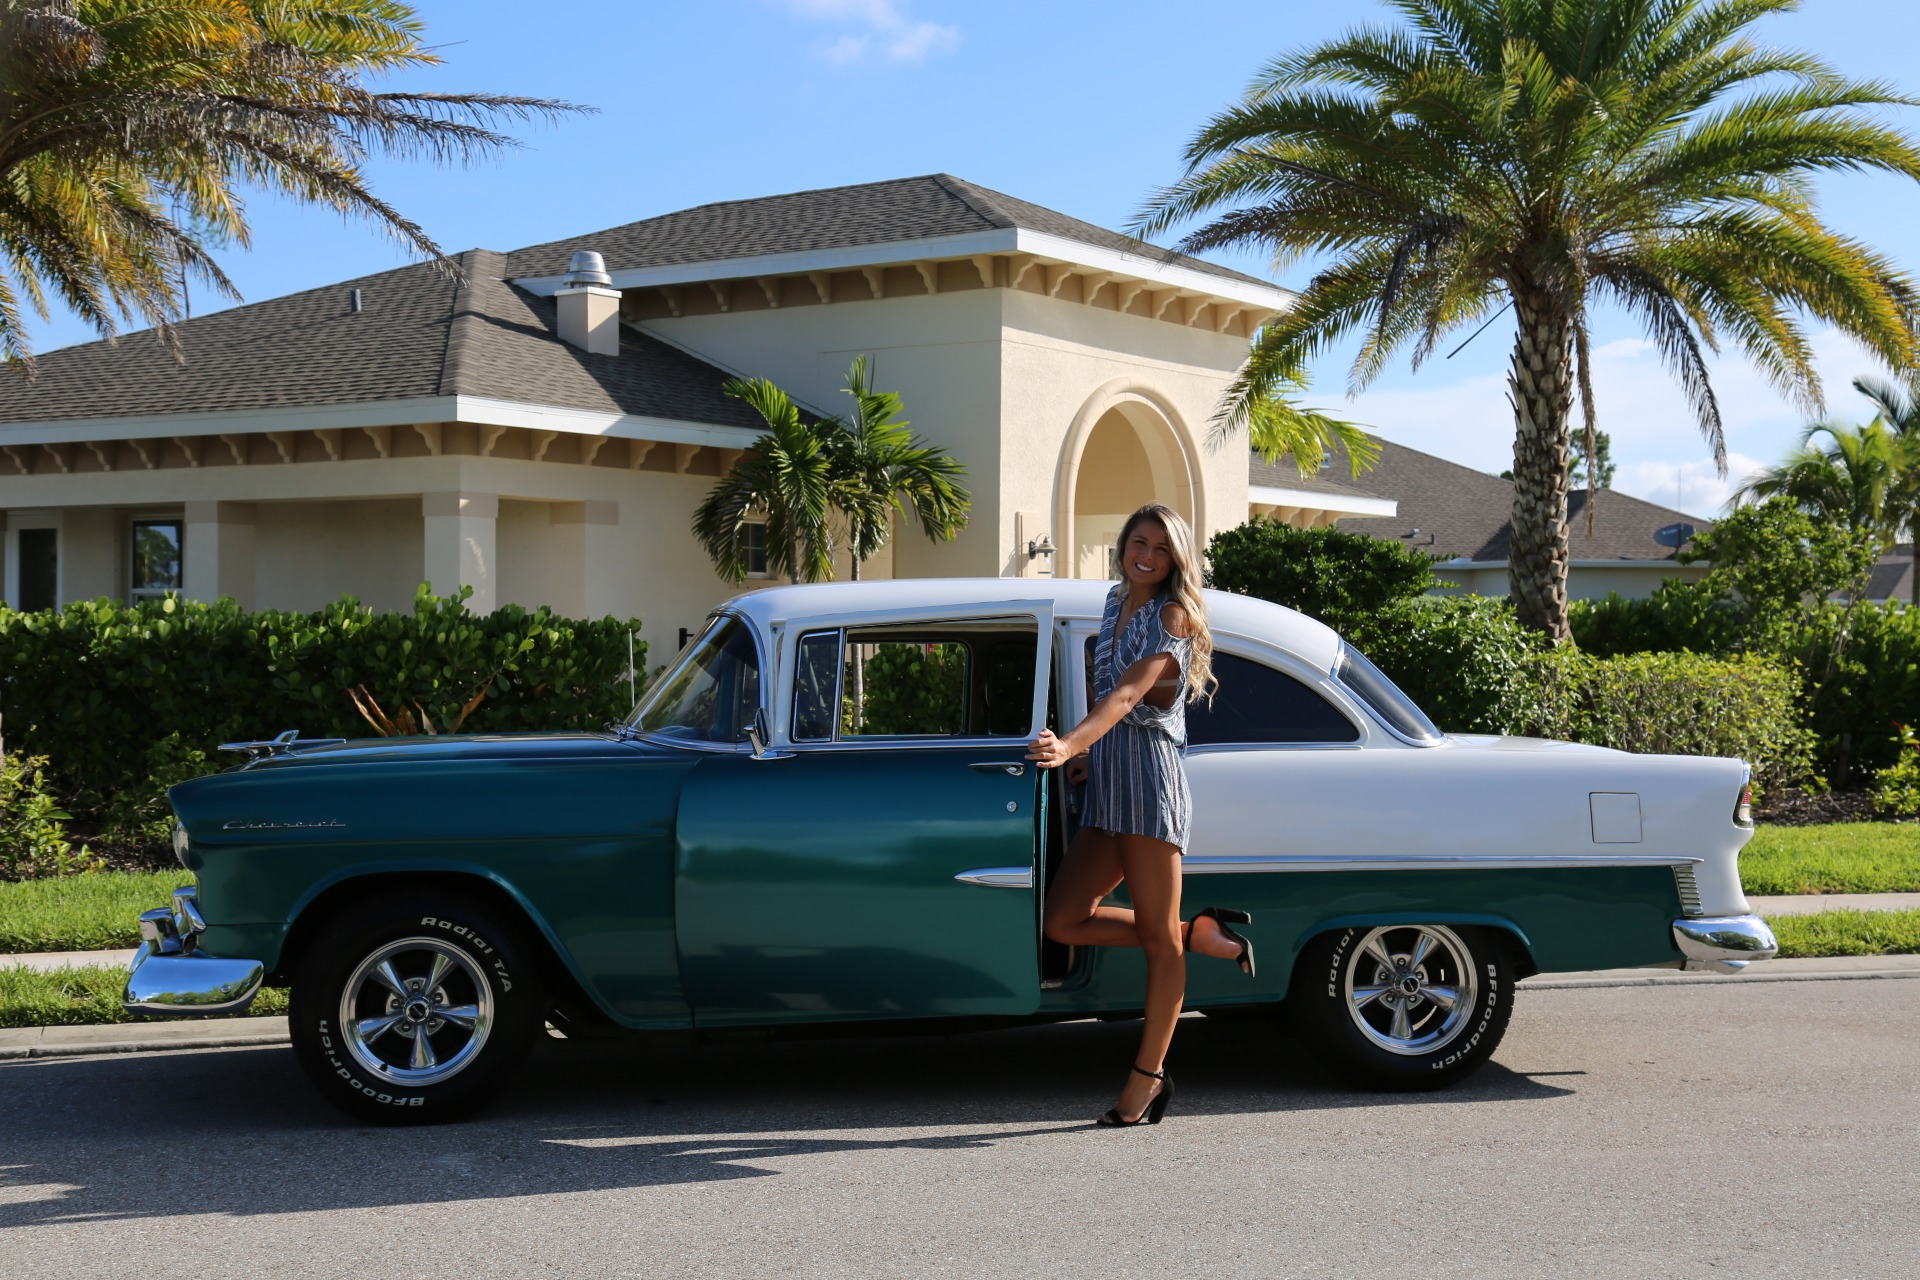 Used 1955 Chevy Bel Air BelAir for sale Sold at Muscle Cars for Sale Inc. in Fort Myers FL 33912 3